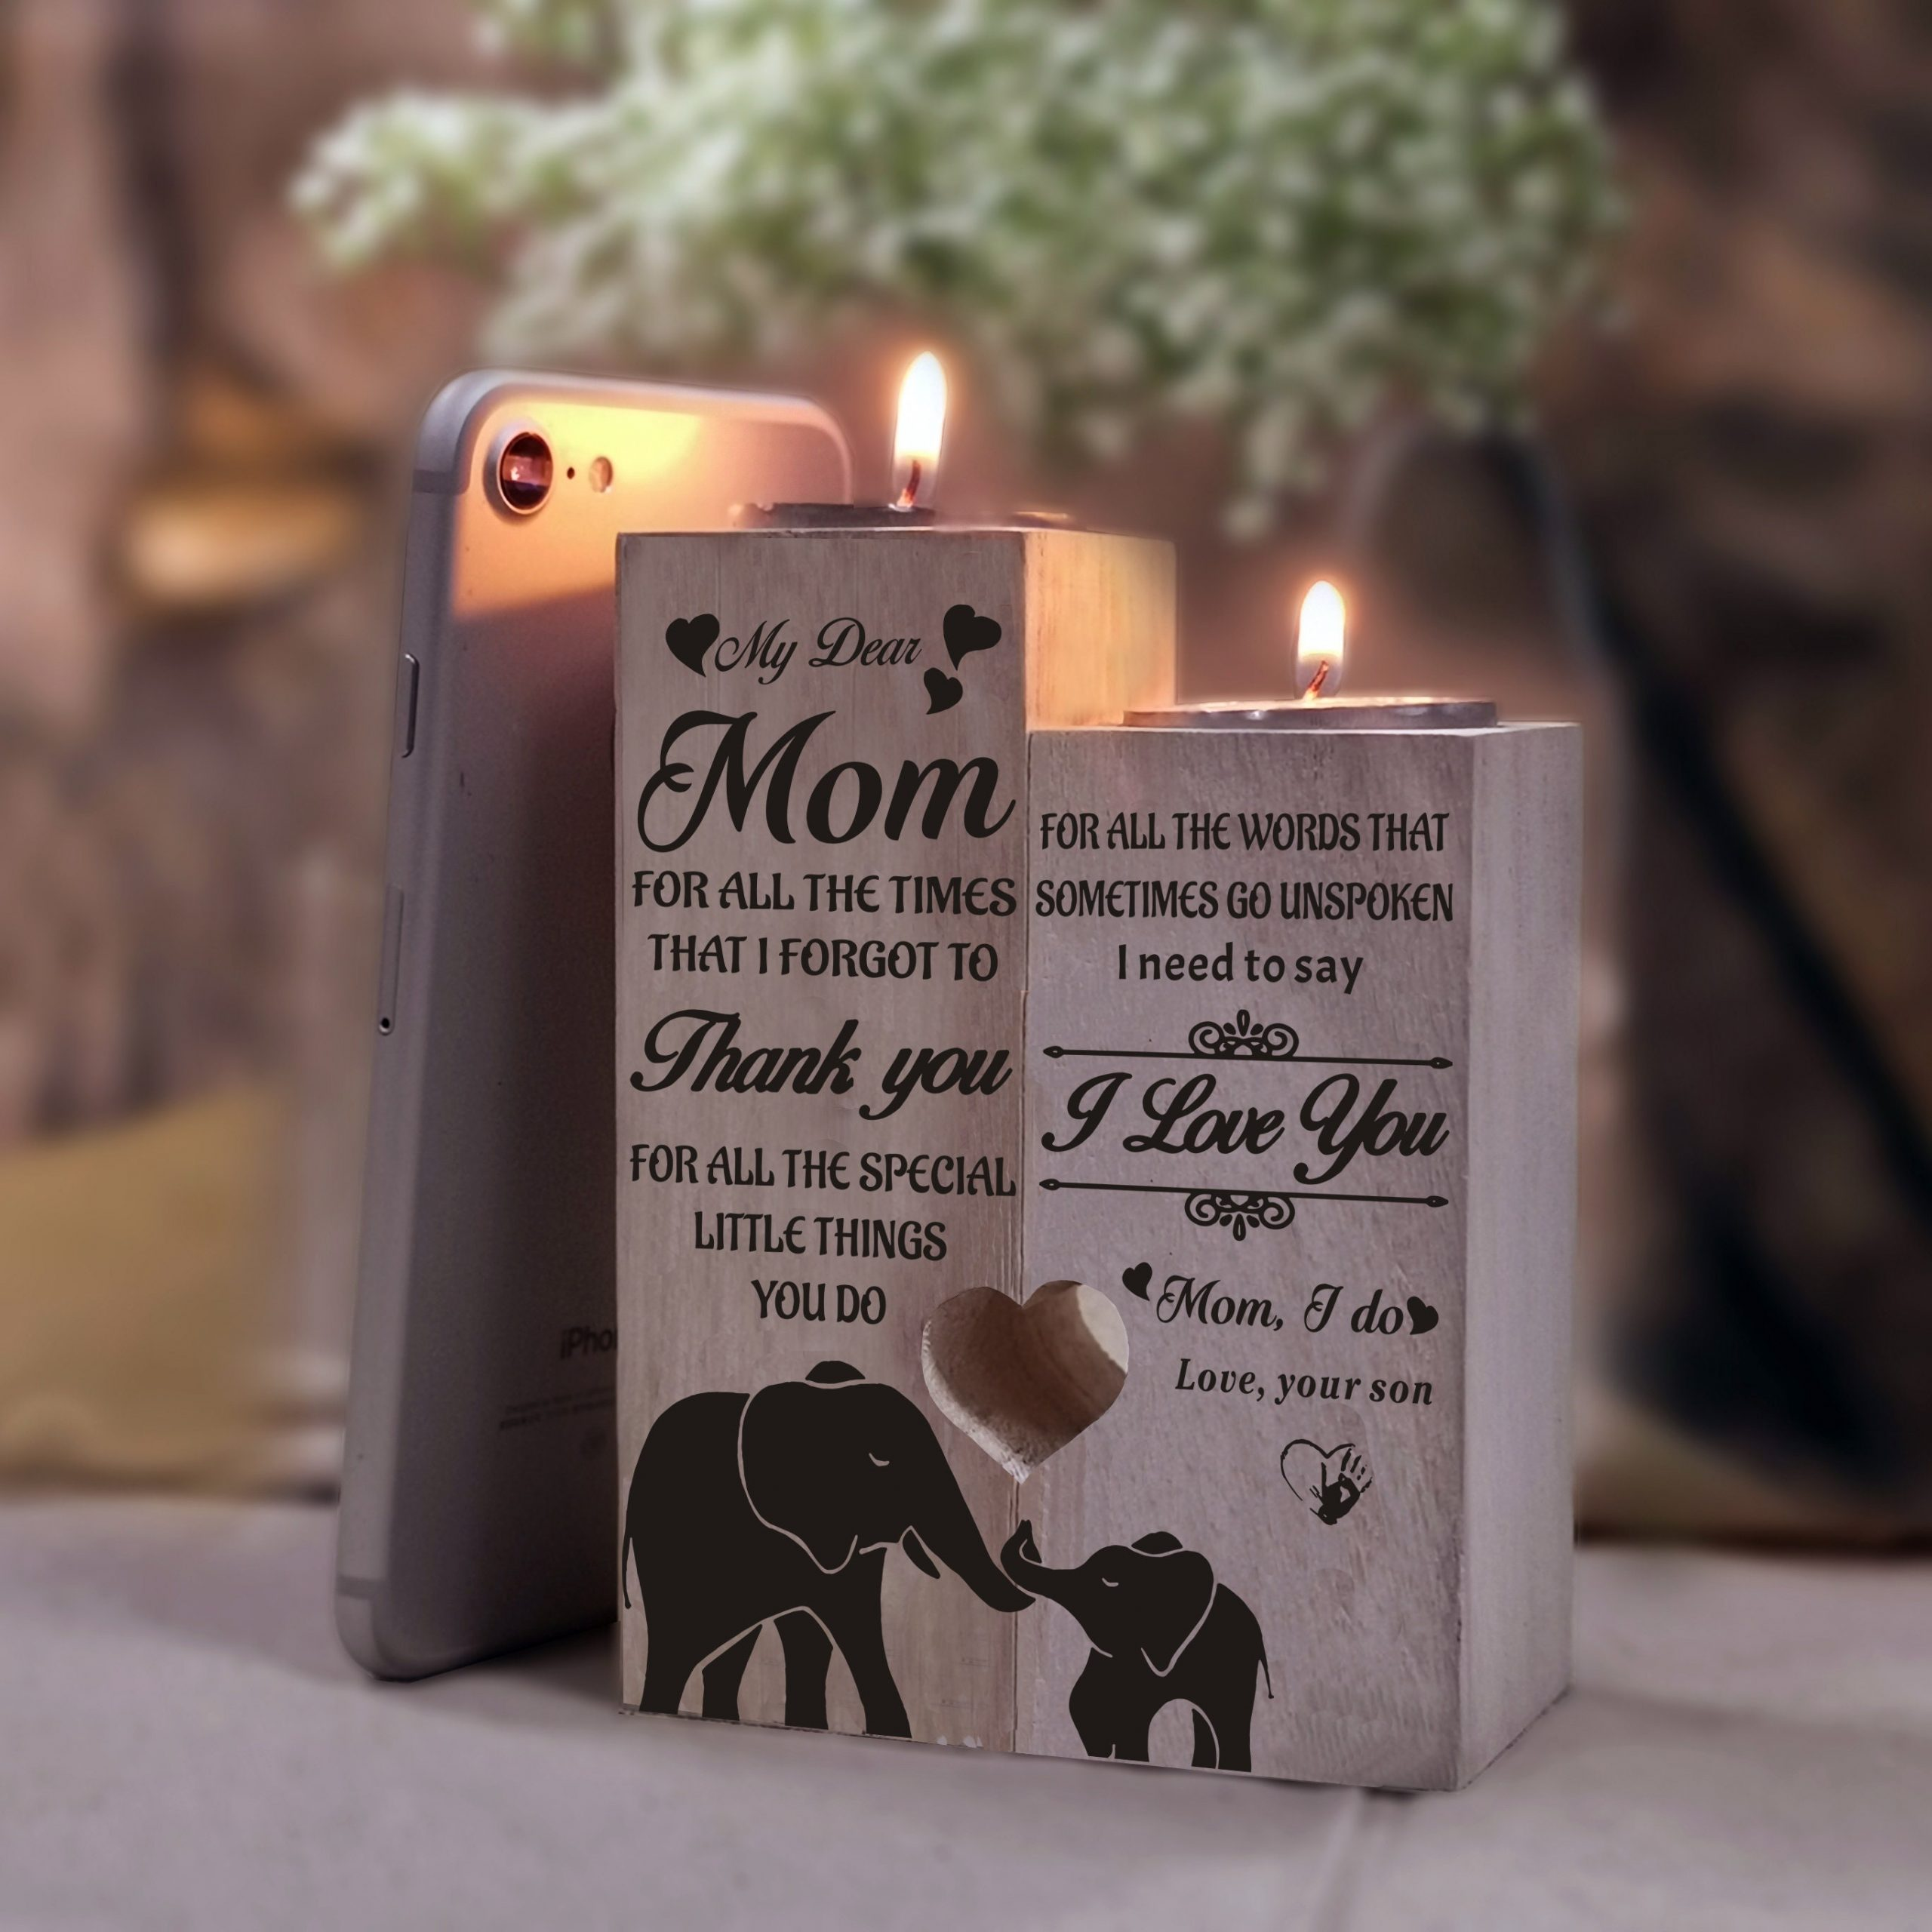 From Son Mother's Day 2021 To Mom Candle Holder Gift Son For Mother Birthday Christmas Wedding Xmas